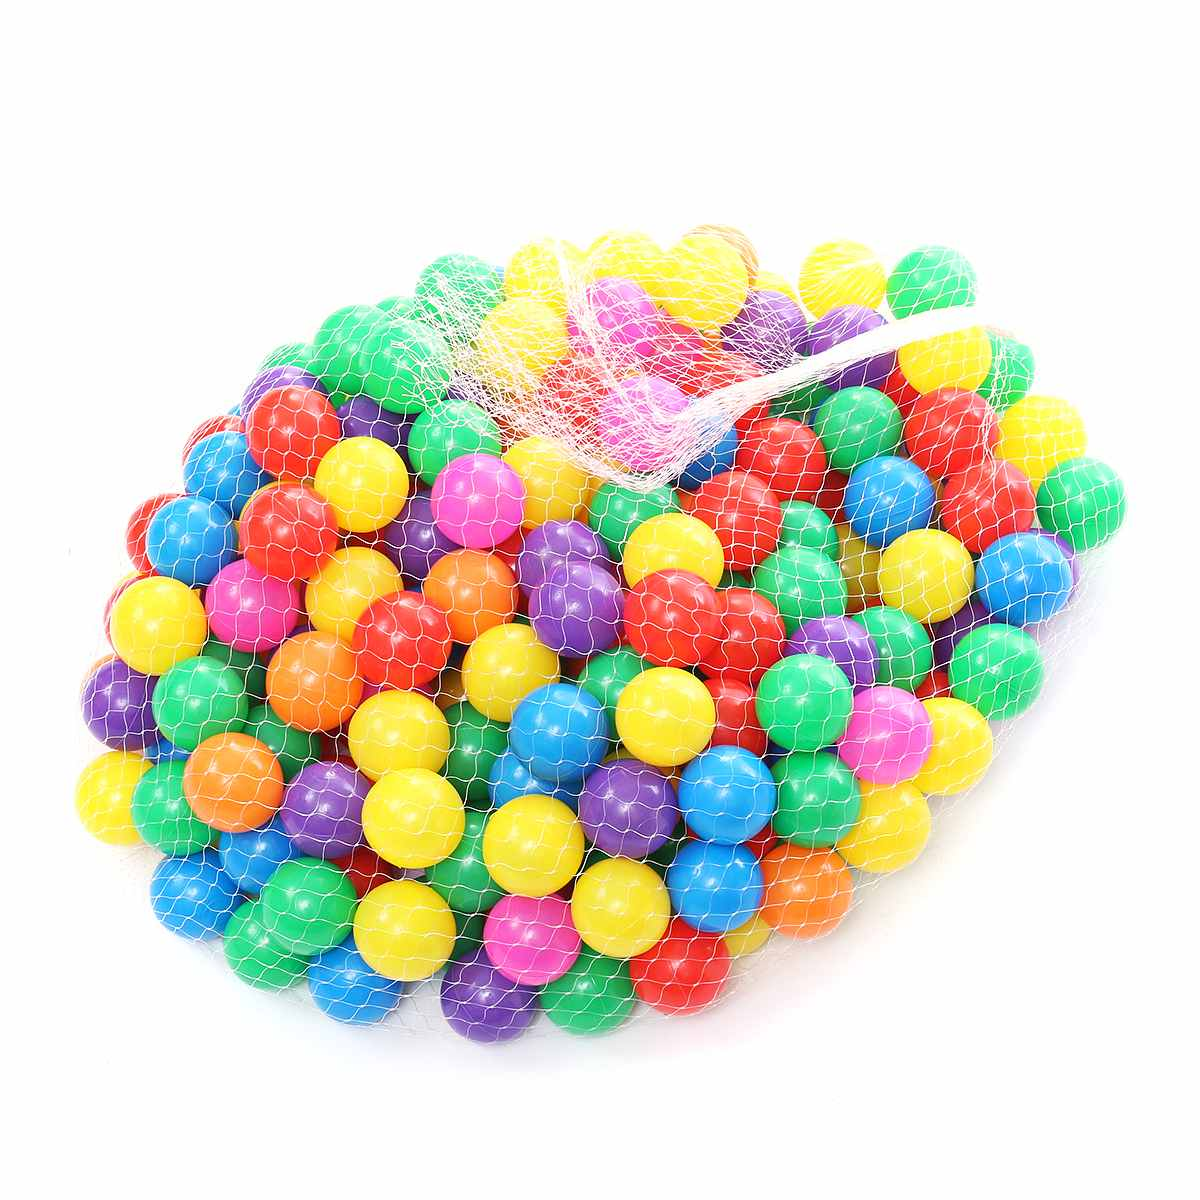 100Pcs Eco-Friendly Colorful Ball Soft Plastic Ocean Ball Funny Baby Kid Swim Pit Toy Safe Non-toxic Water Pool Ocean Ball